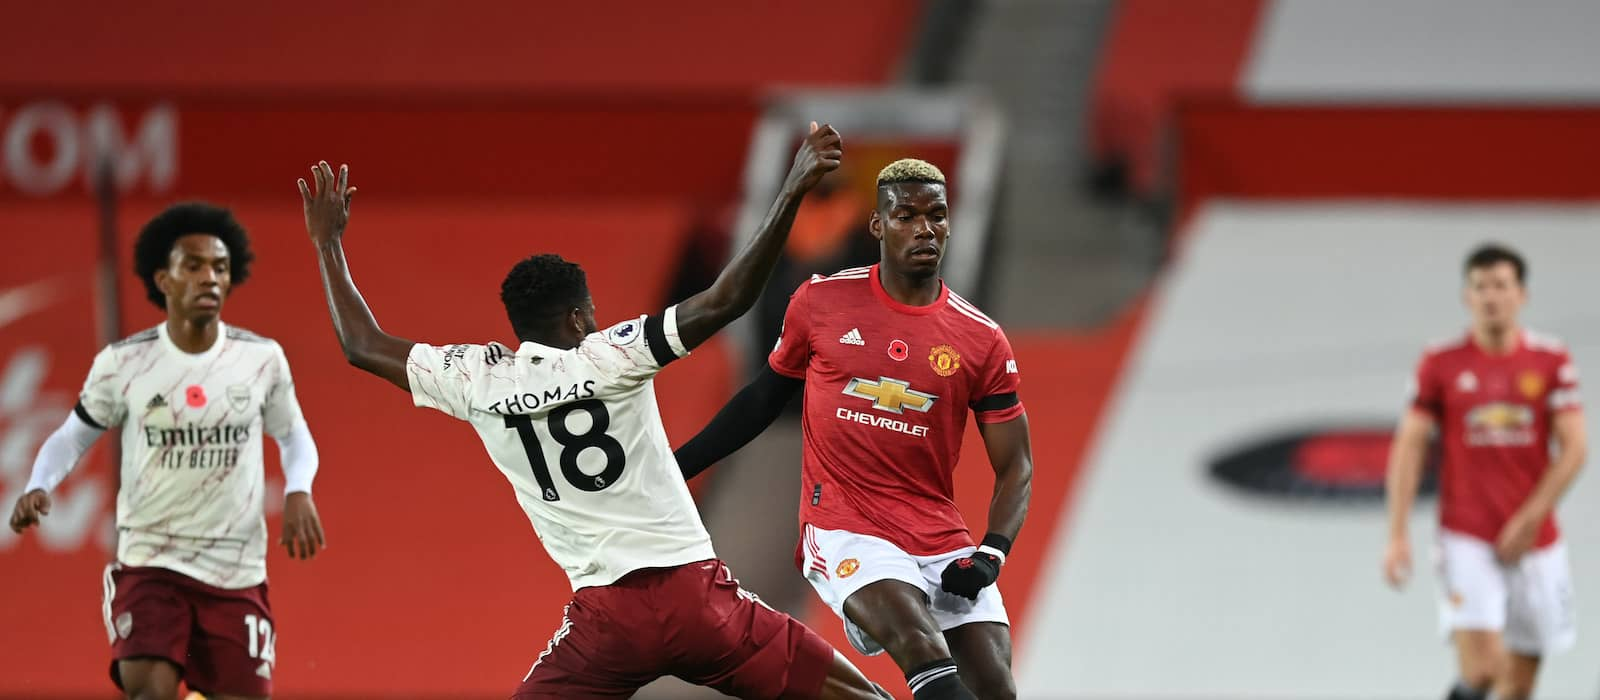 Paul Pogba reveals his thoughts on poor foul vs Arsenal